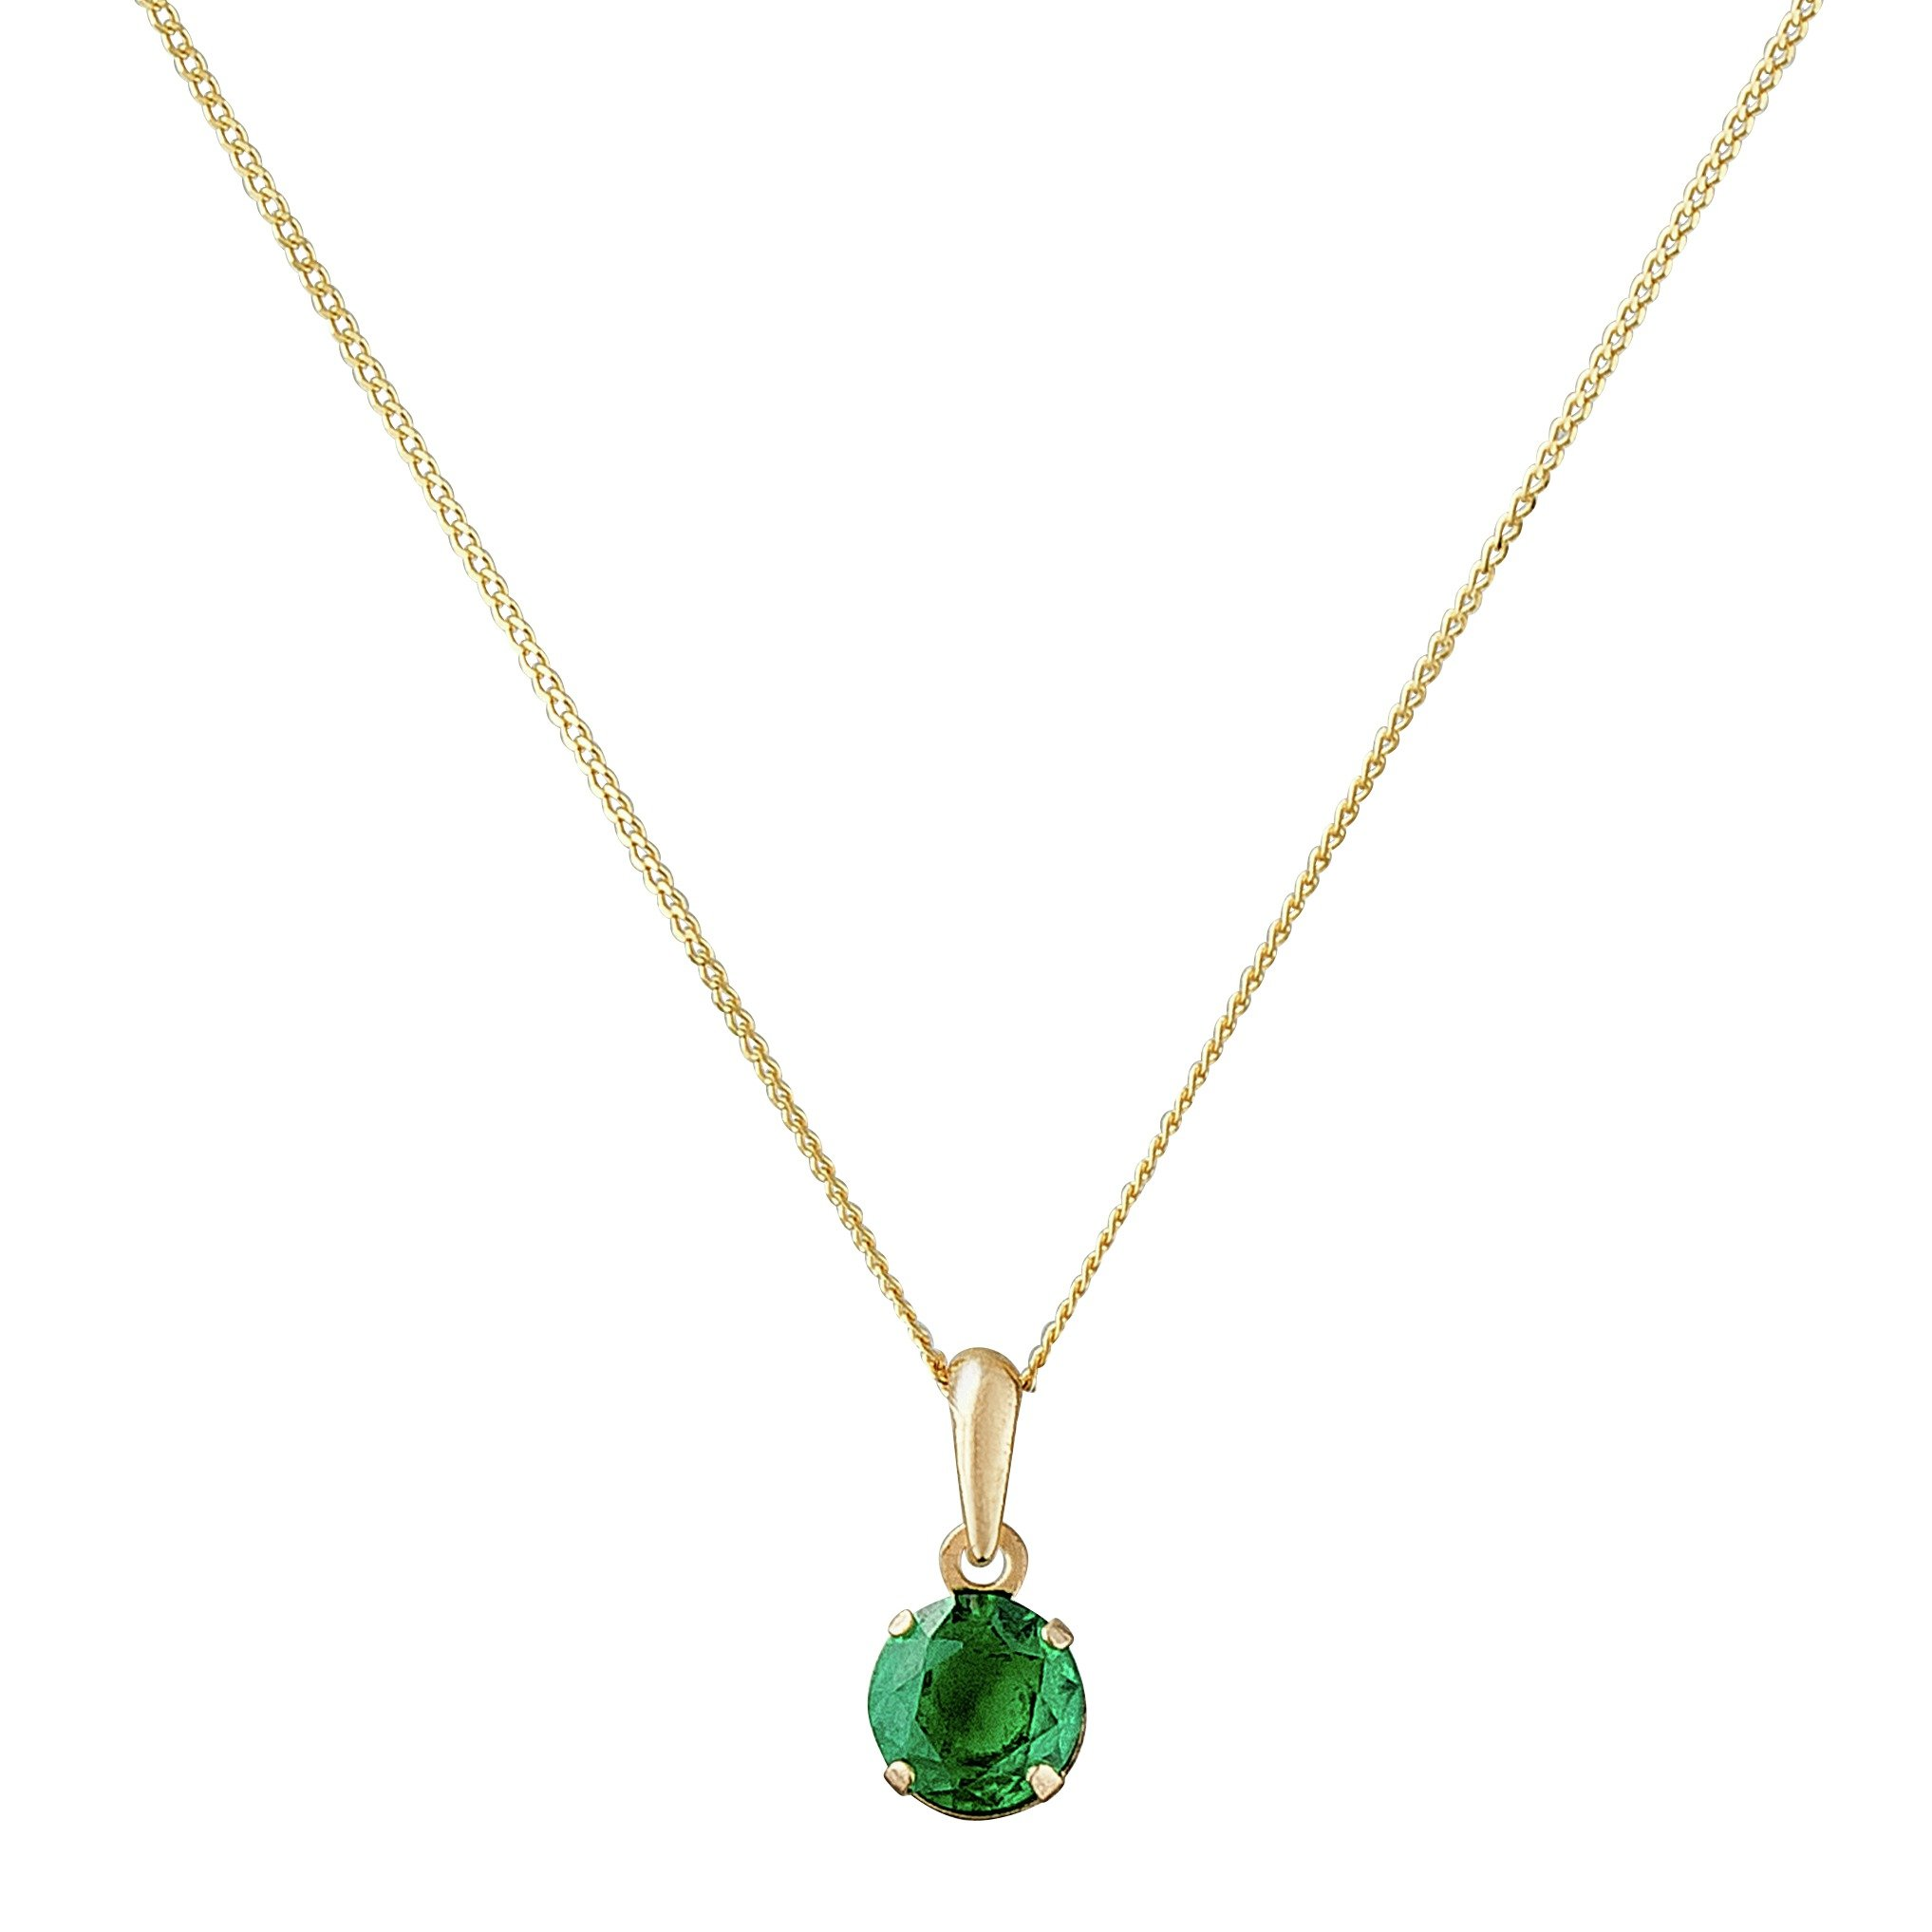 Image of Revere 9ct Gold 5mm Created Emerald Pendant - May